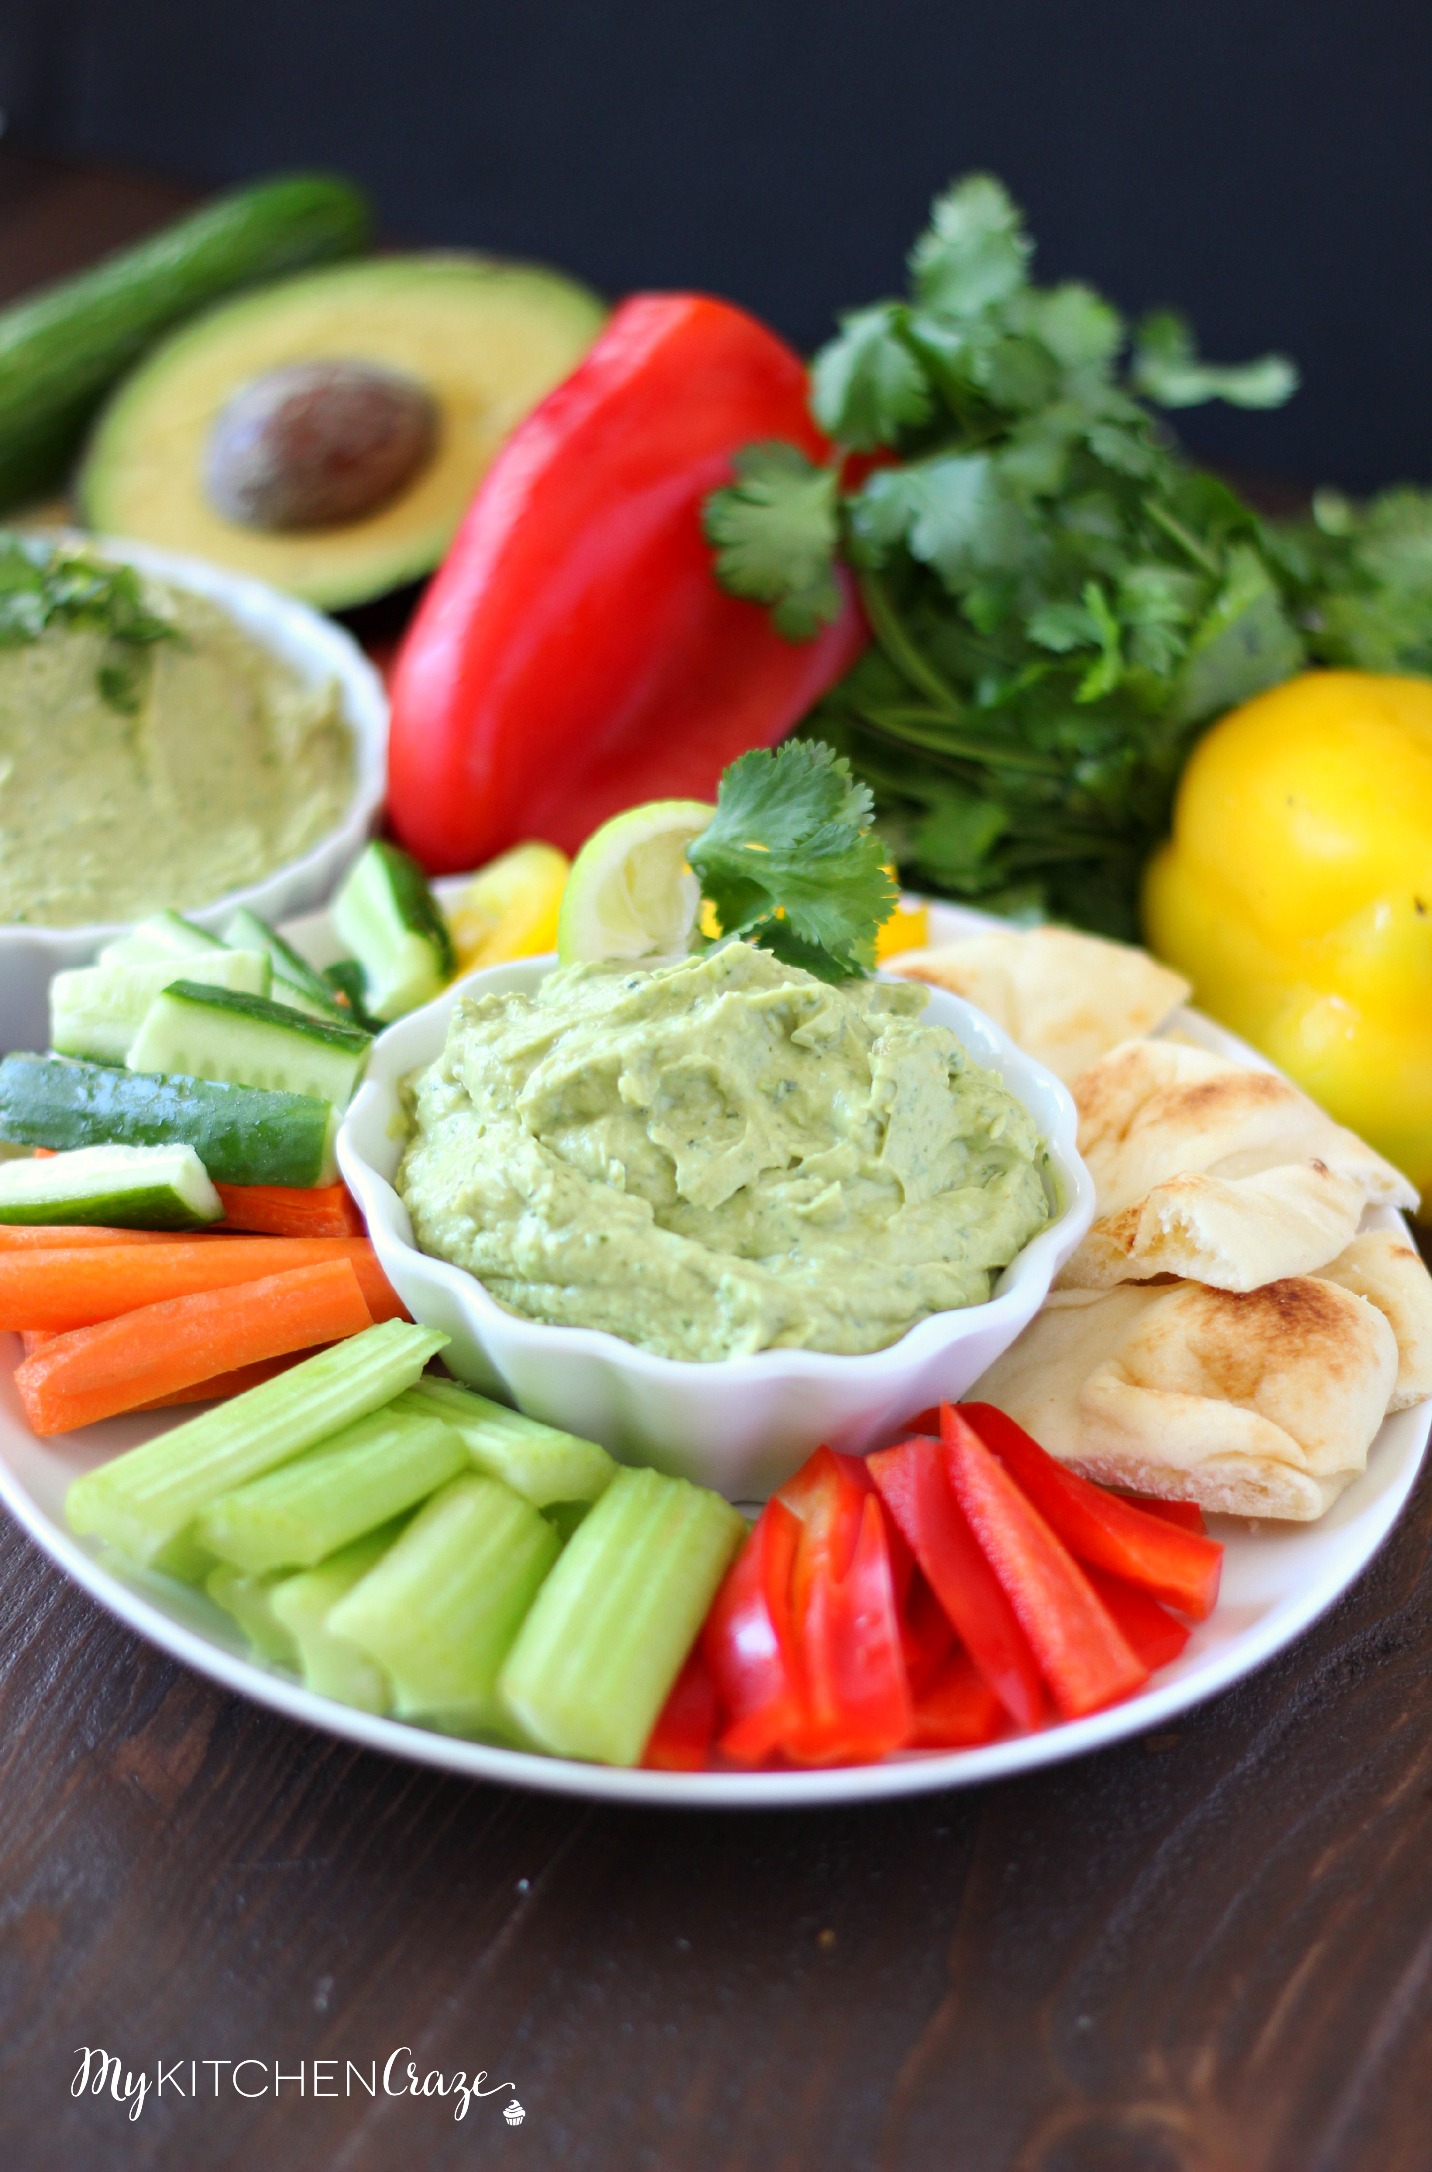 Avocado Yogurt Dip ~ mykitchencraze.com ~ Perfect for all sorts of vegetables and crackers. This dip needs to be at your next party!